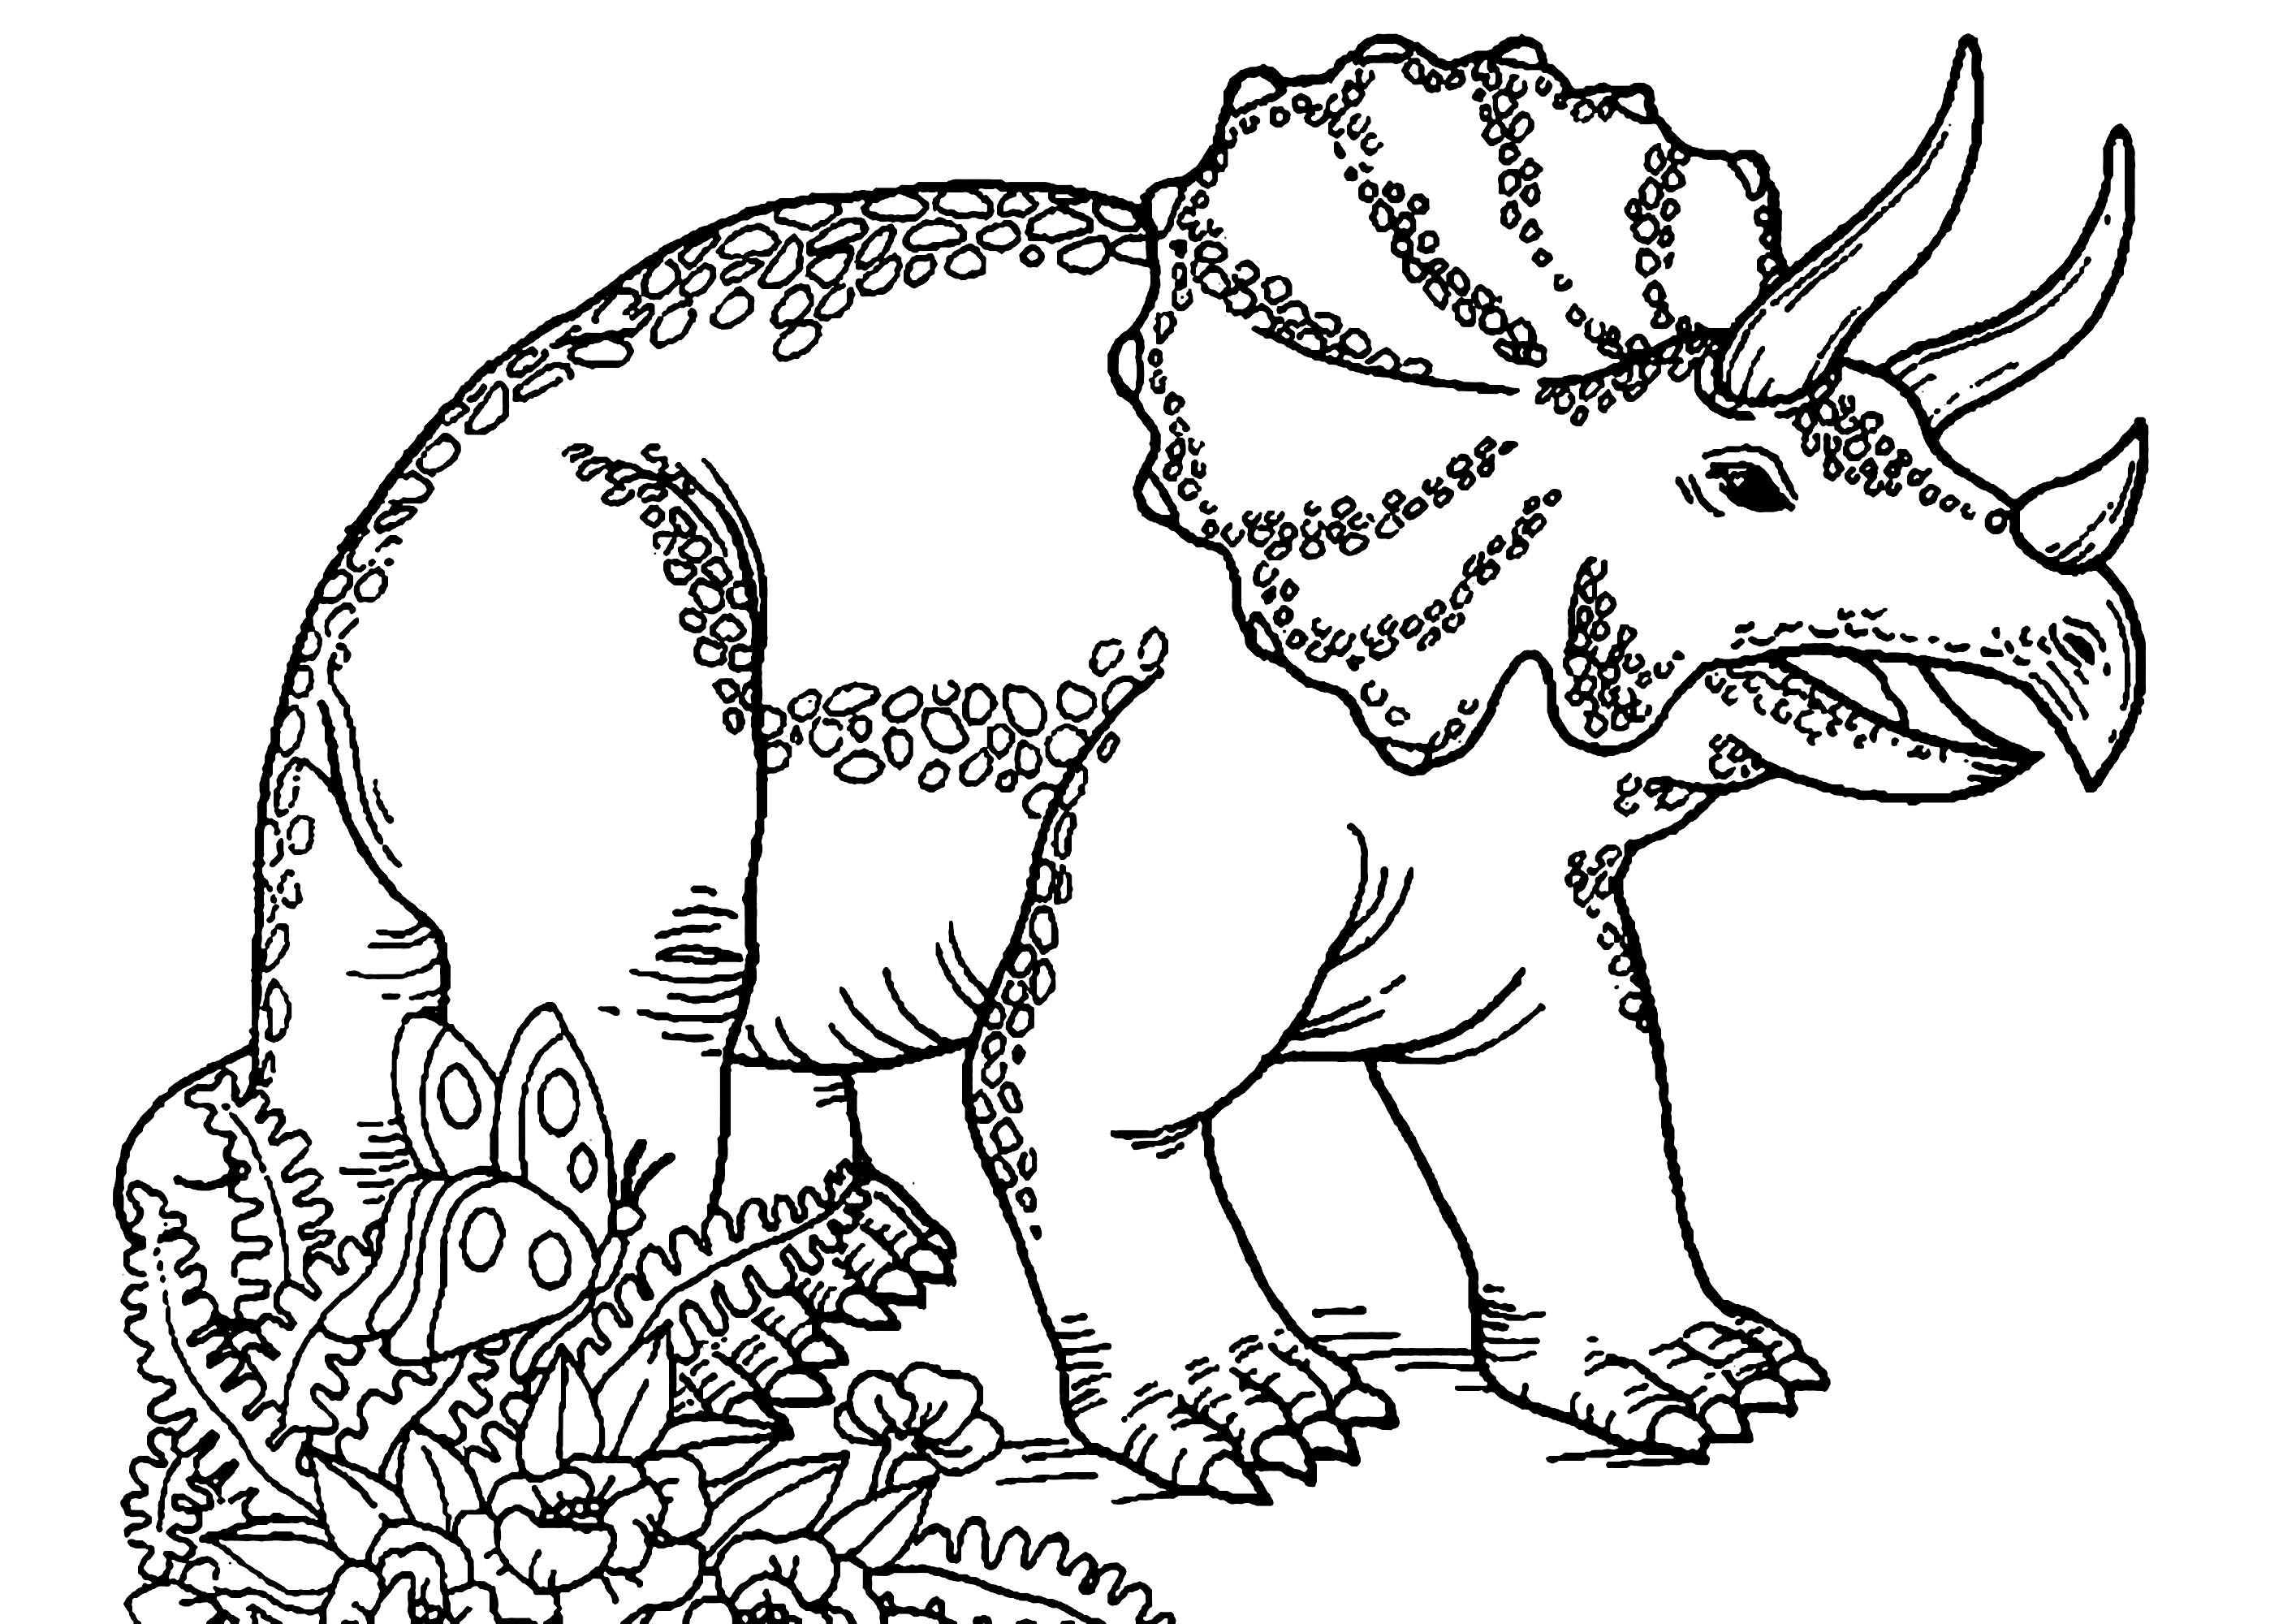 dinosaurs coloring pages printable 35 free printable dinosaur coloring pages coloring dinosaurs pages printable